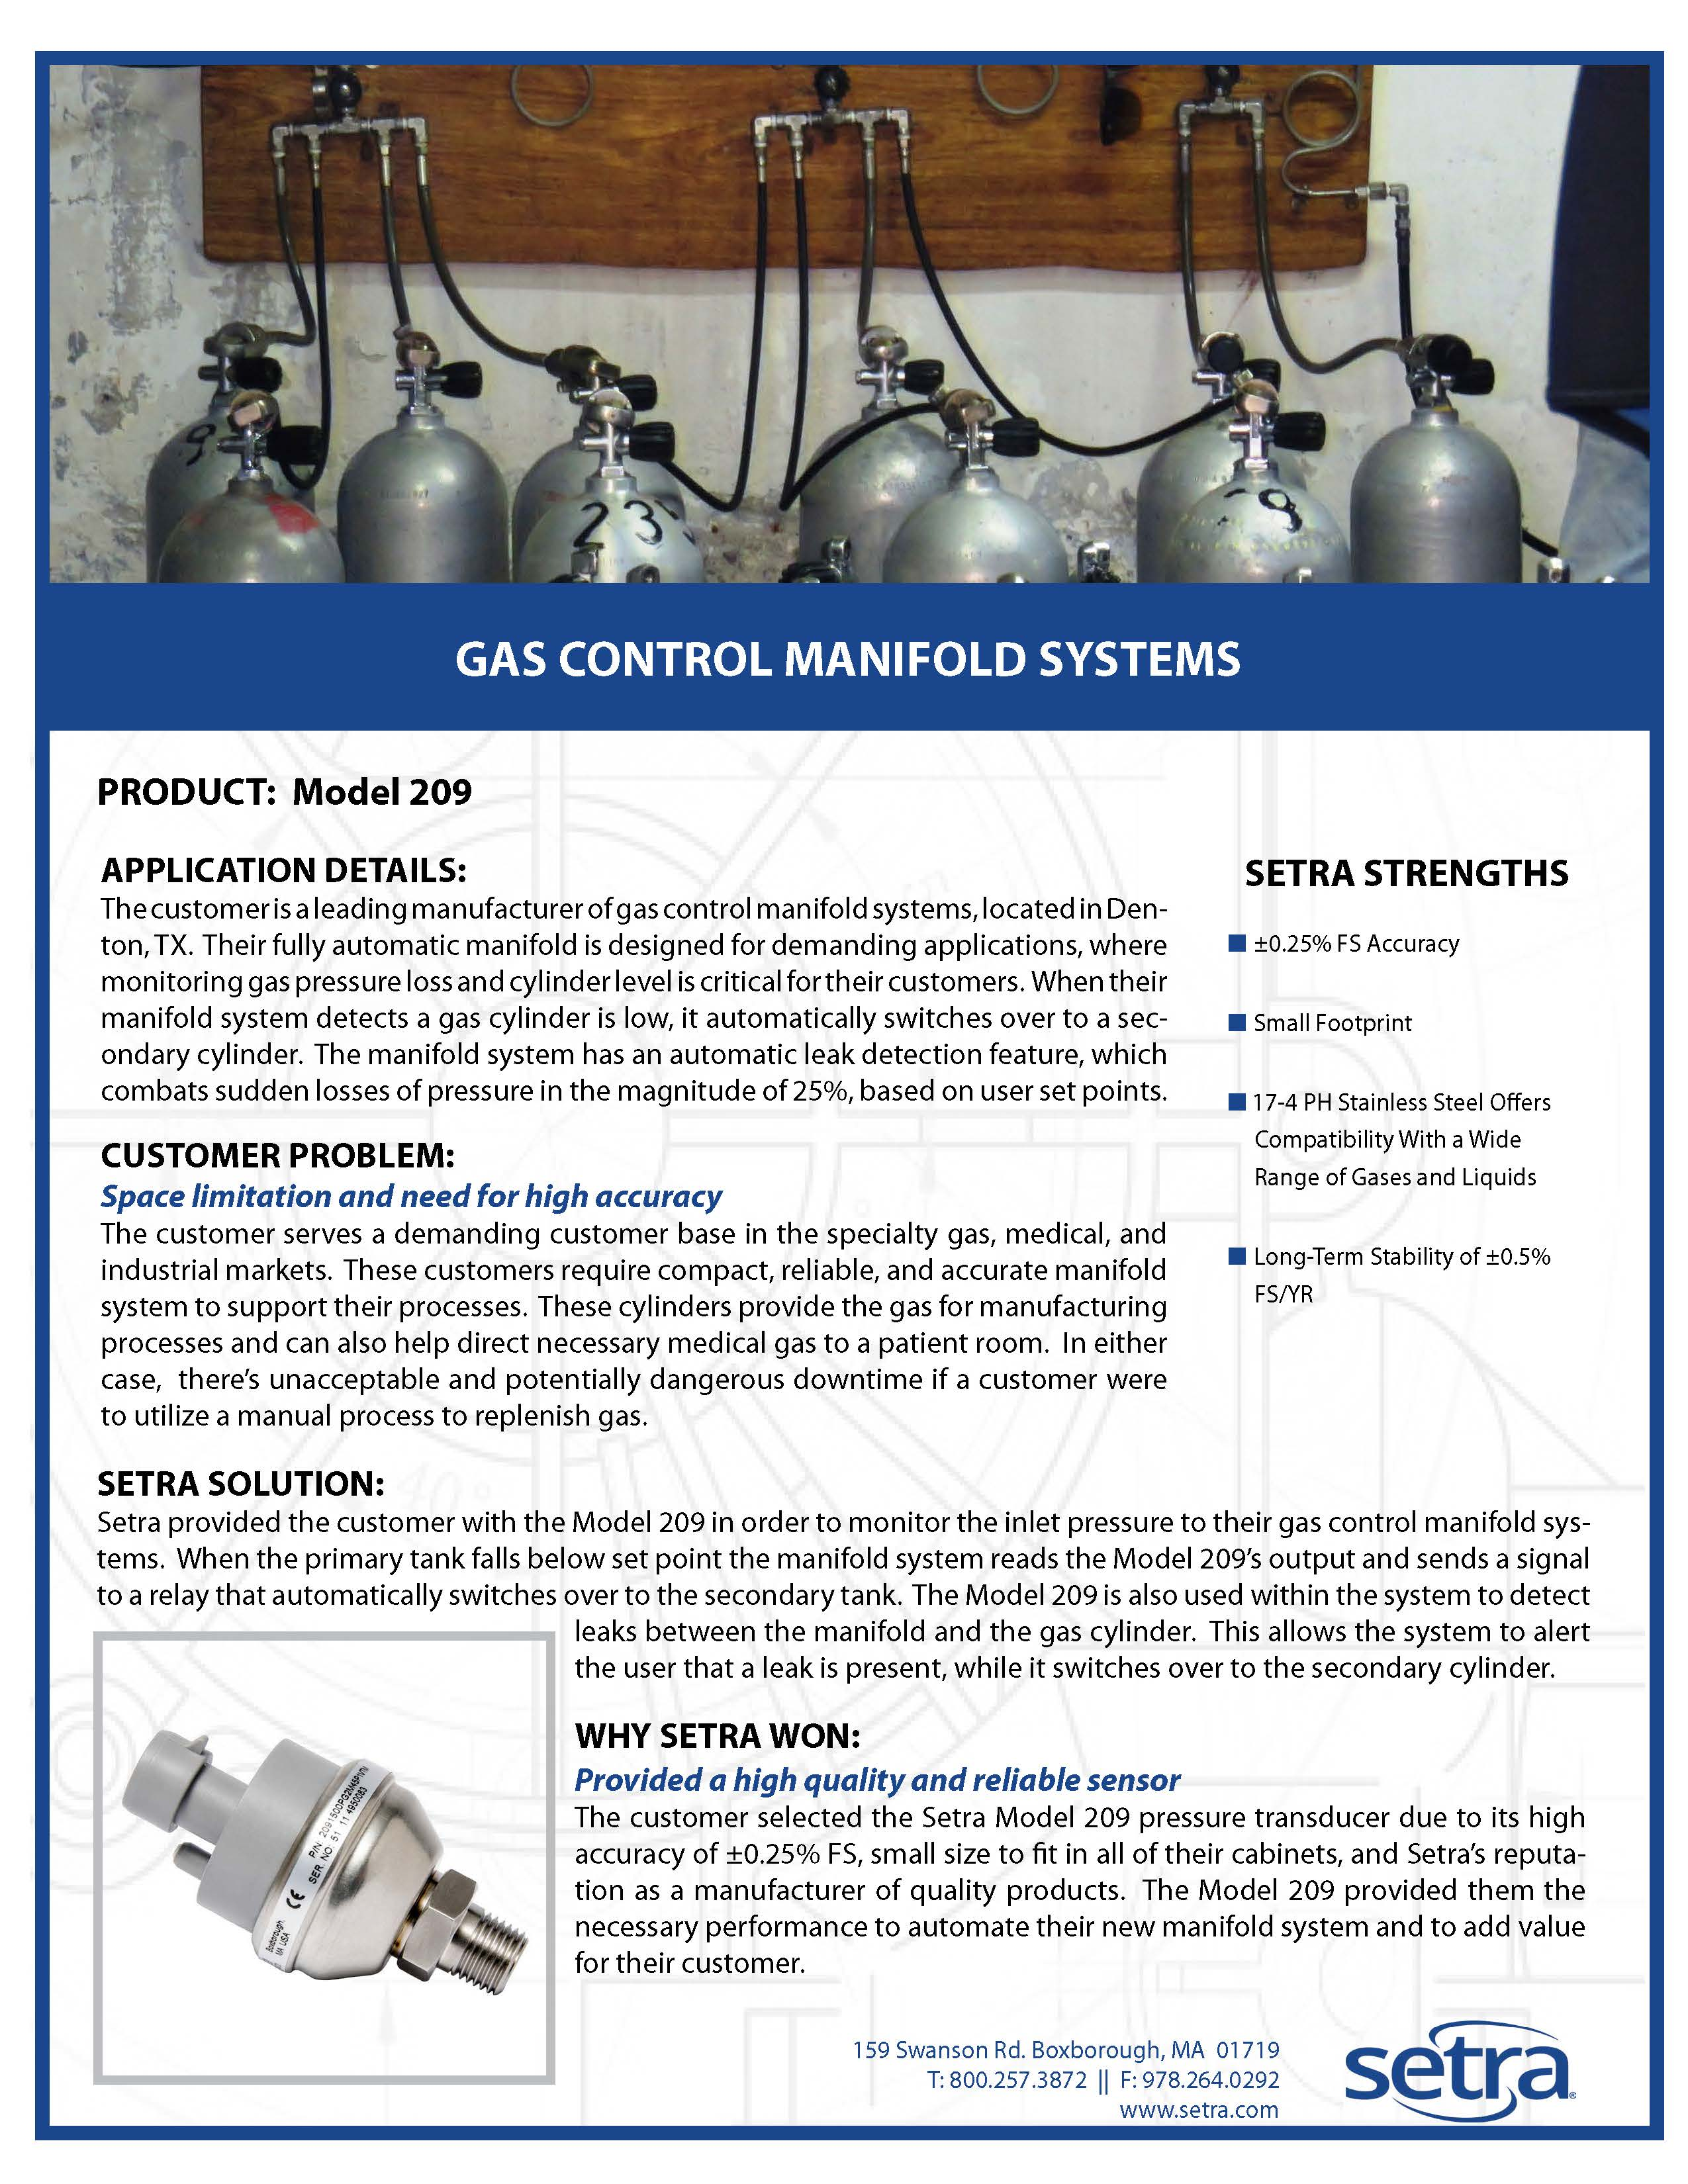 setra 209; pressure transducers; gas control; gas manifold systems; pressure monitoring